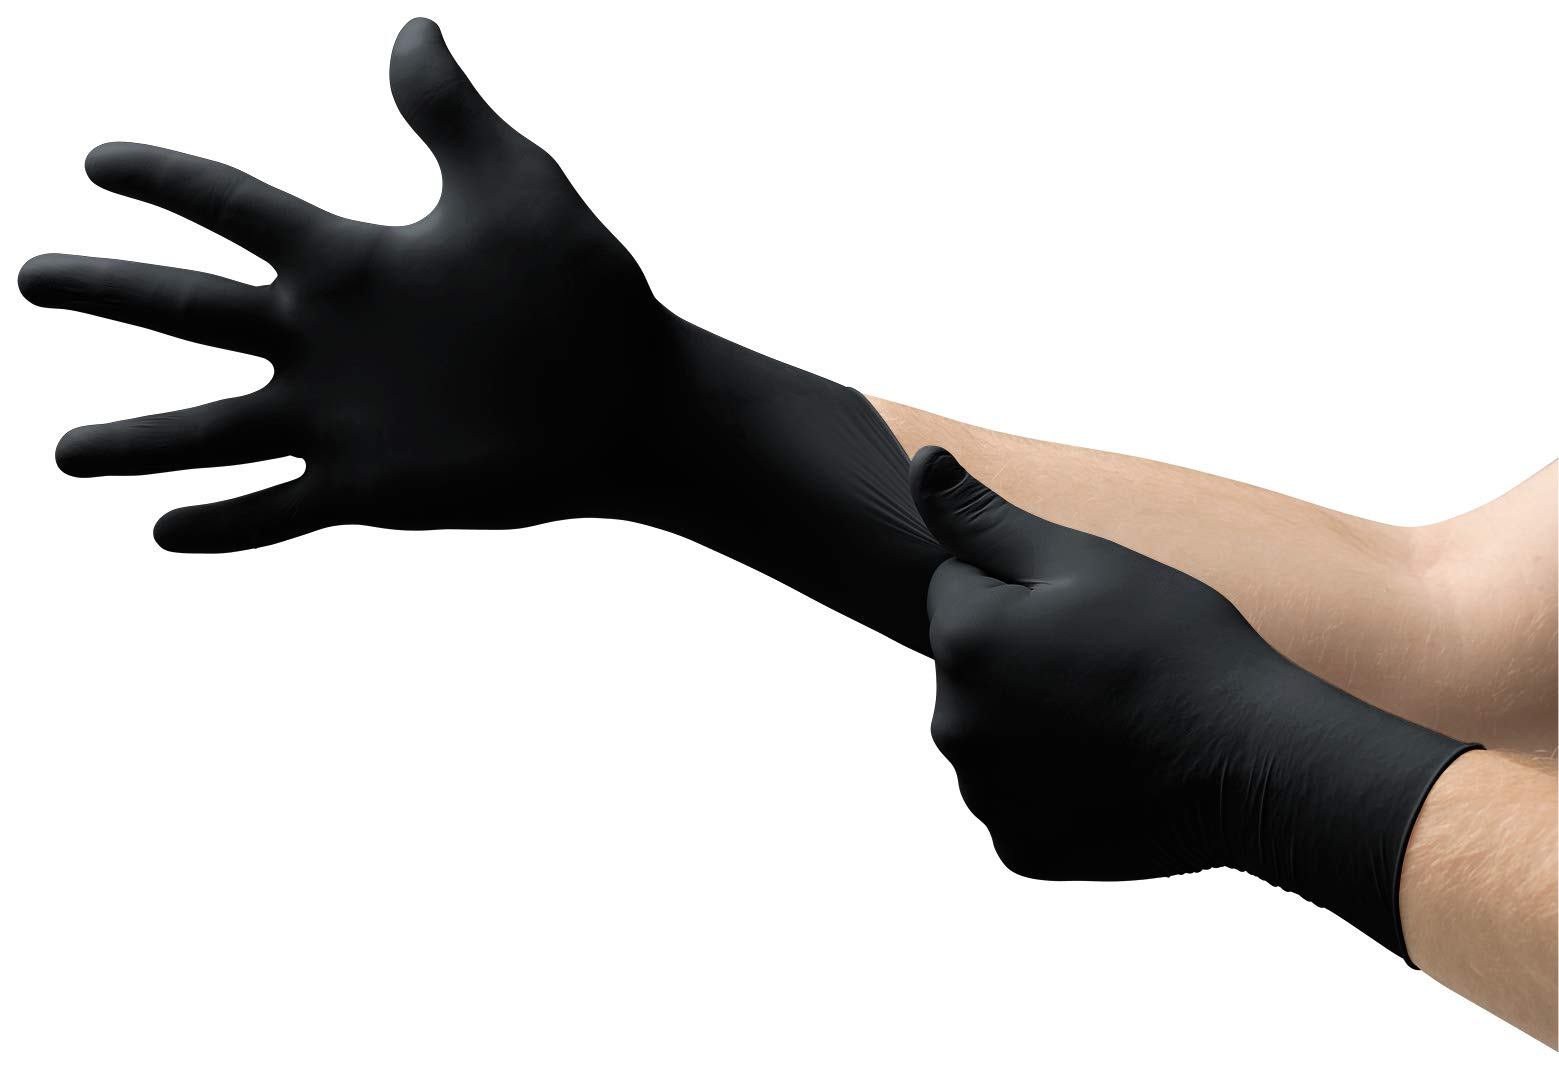 Microflex MK-296 Black Disposable Nitrile Gloves, Latex-Free, Powder-Free Glove for Mechanics, Automotive, Cleaning or Tattoo Applications, Medical / Exam Grade, Size X-Large, Case of 1000  Units